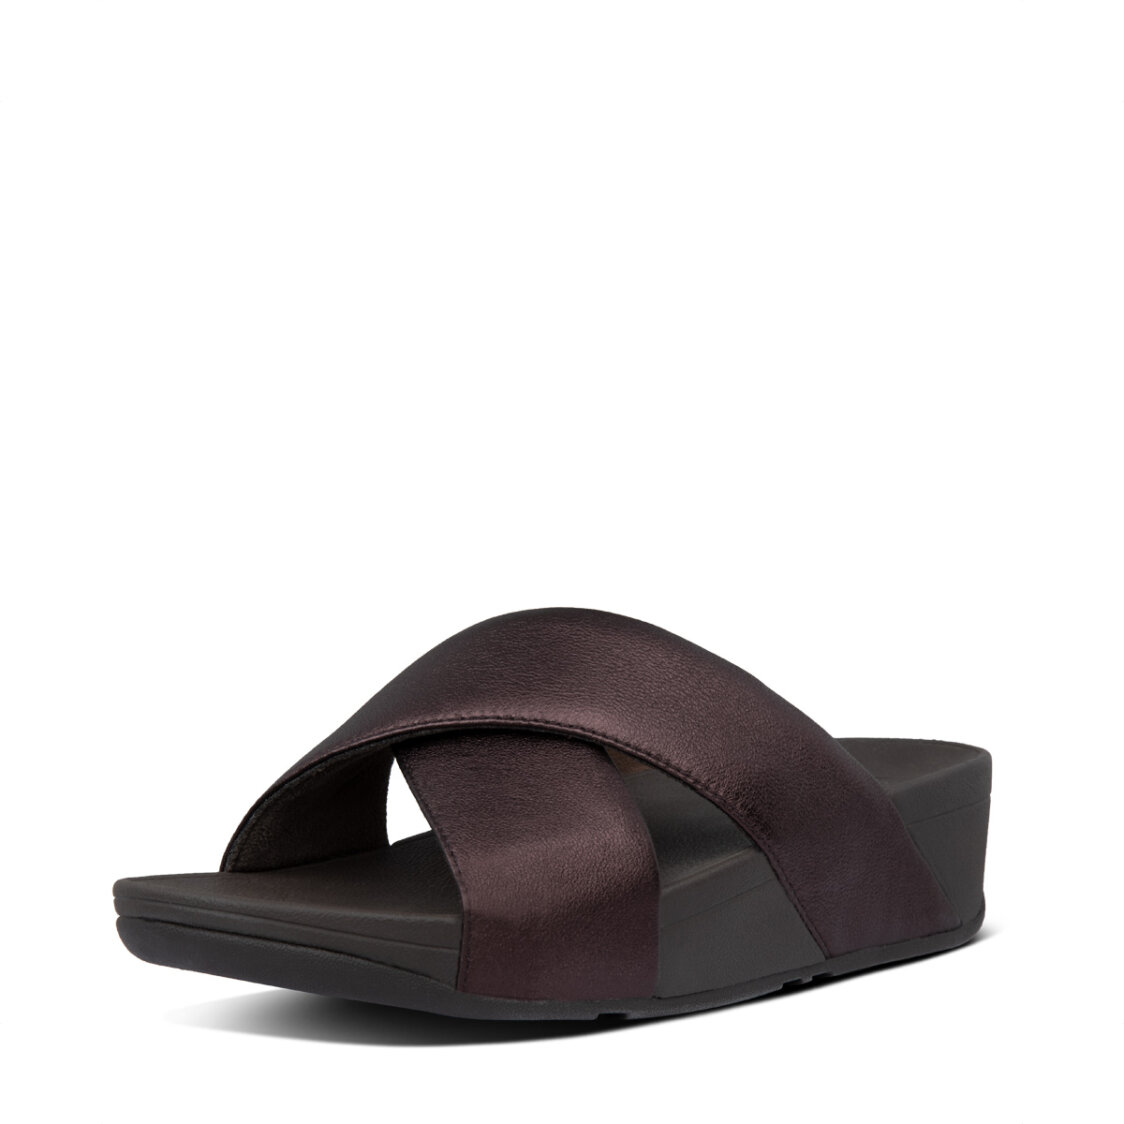 Fitflop Lulu Cross Slide Sandals Leather Chocolate Metallic